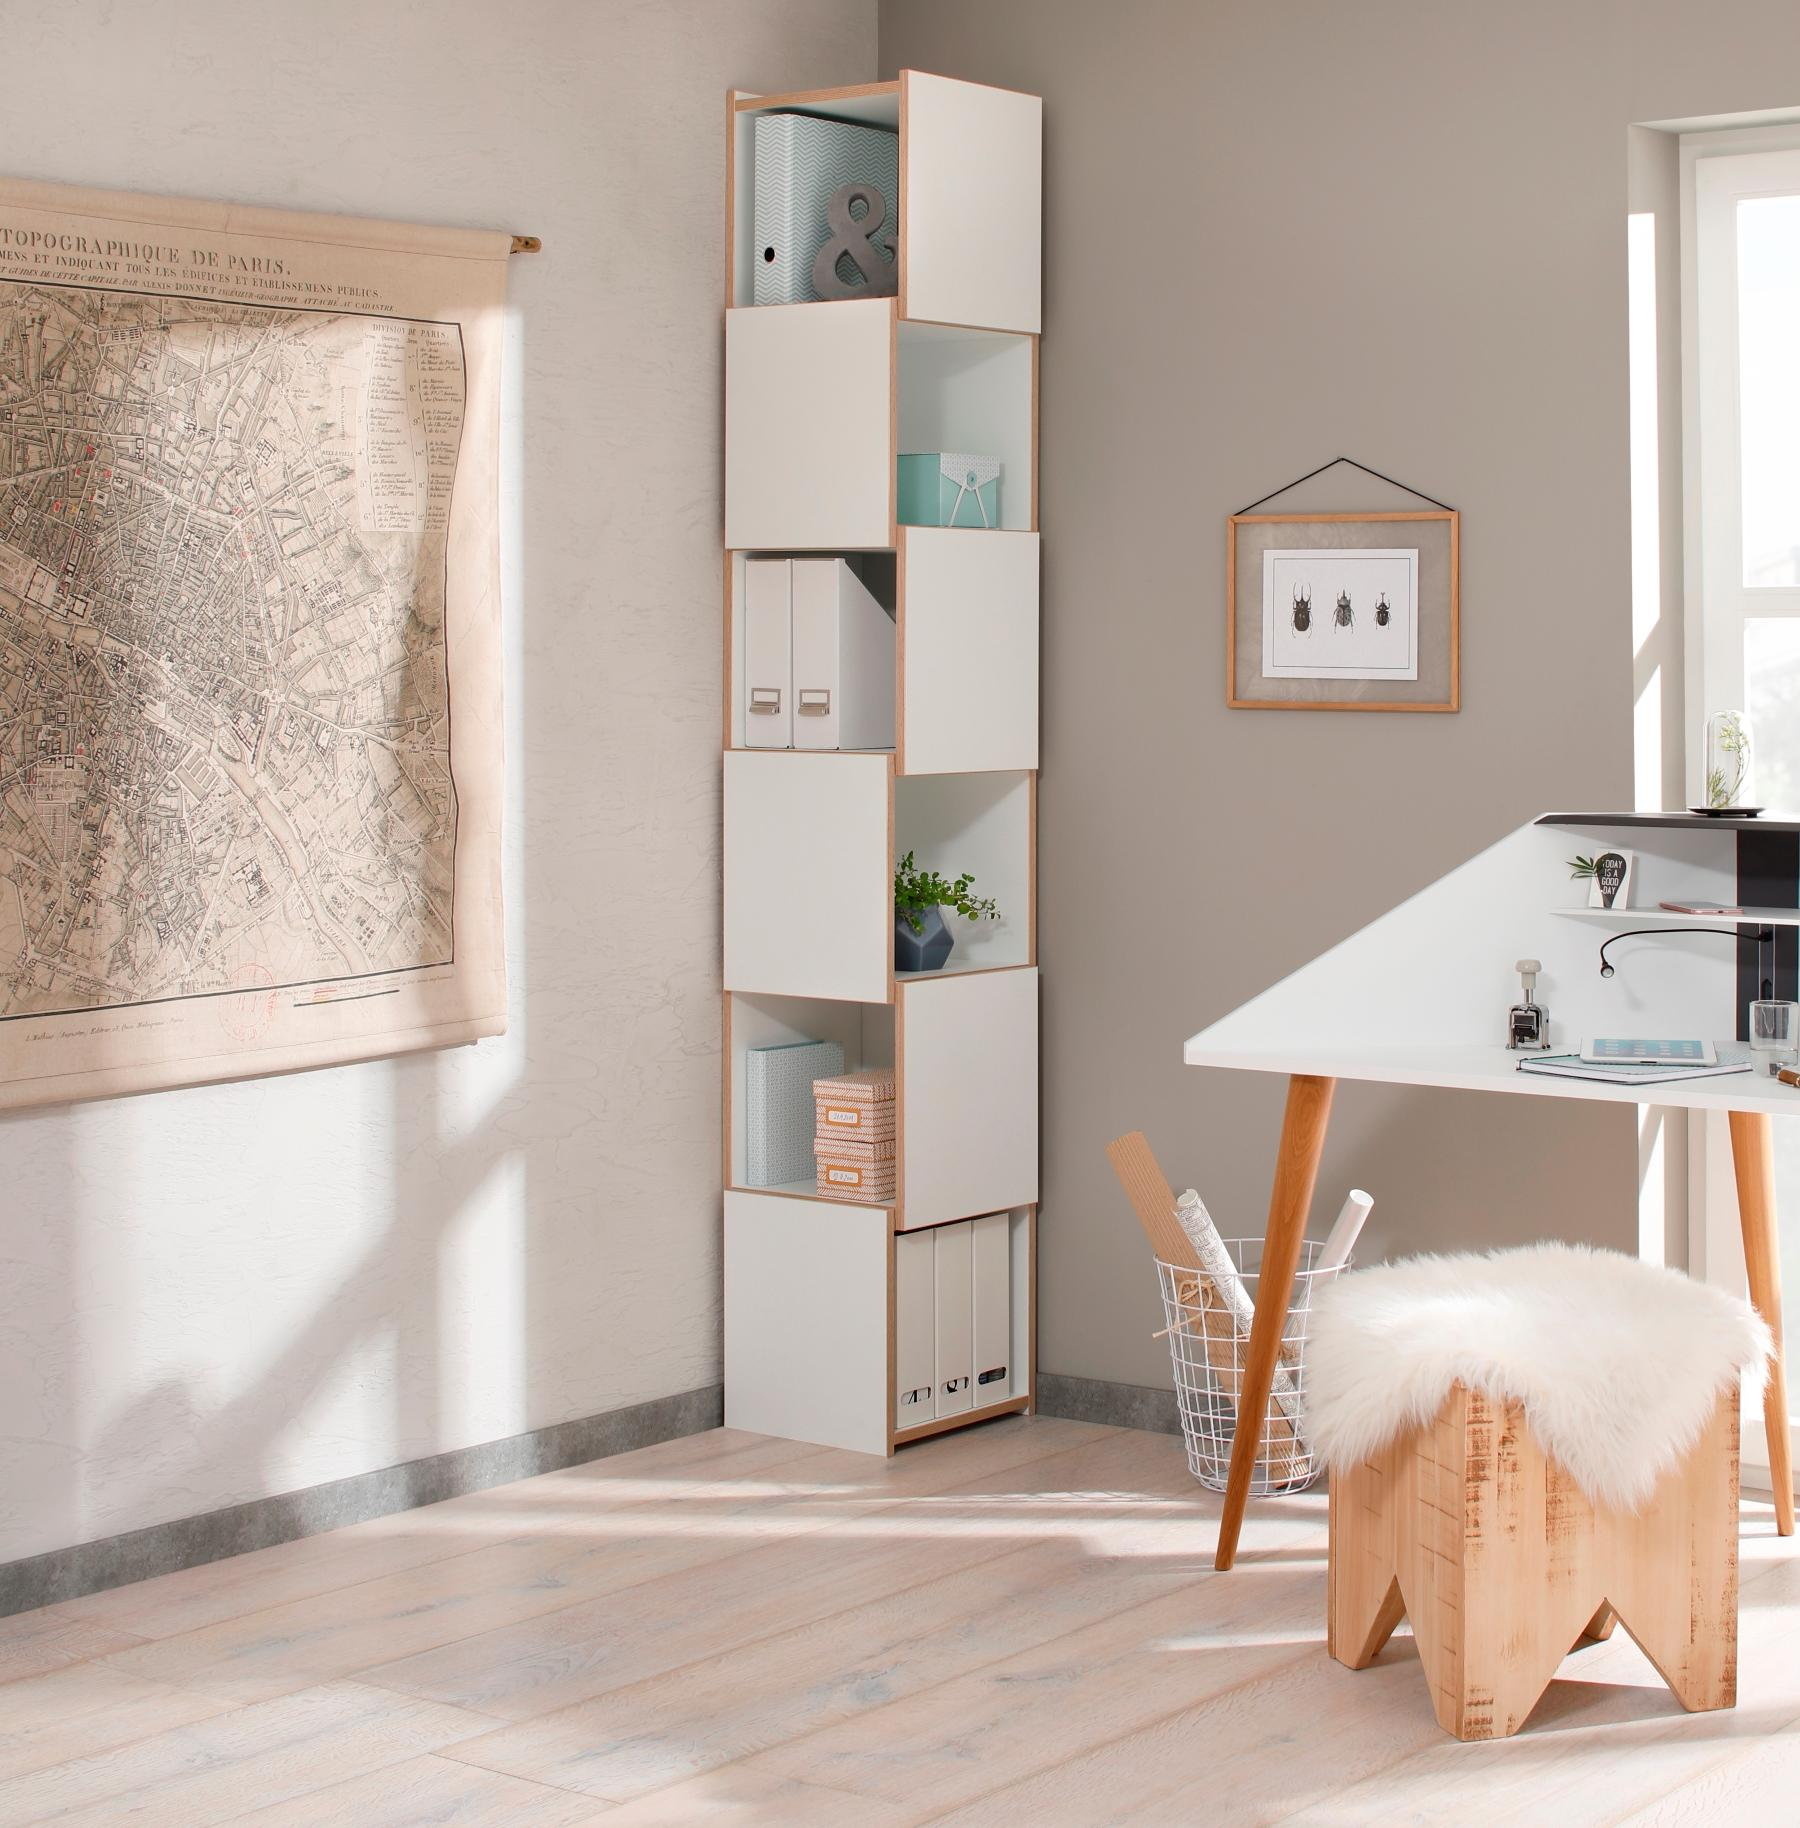 Design-Eckregal im Homeoffice #eckregal #eckmöbel ©Fotostudio Weismain